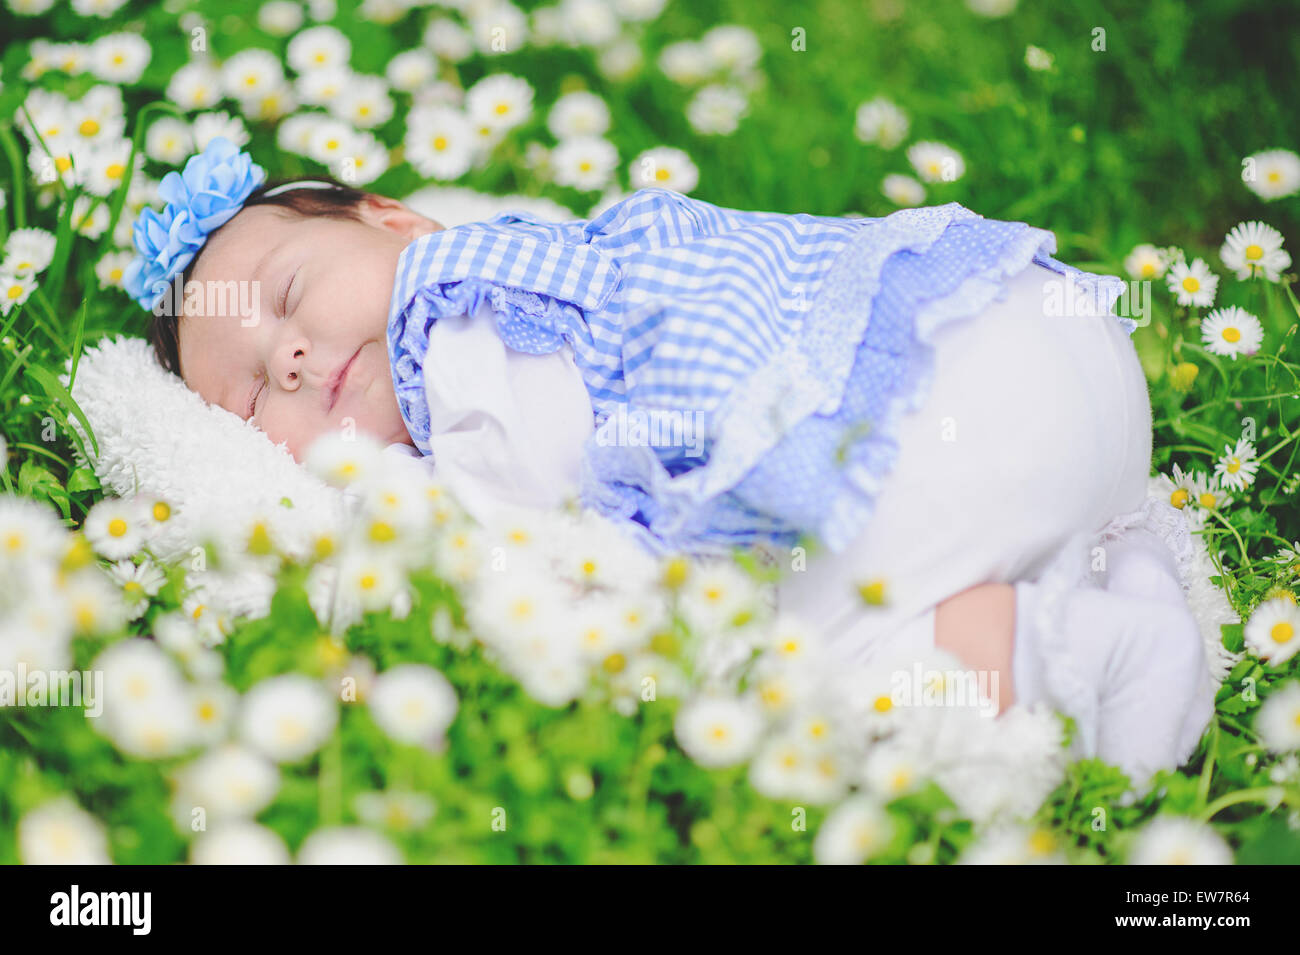 Baby sleeping in a field of daisies Stock Photo: 84379740 - Alamy